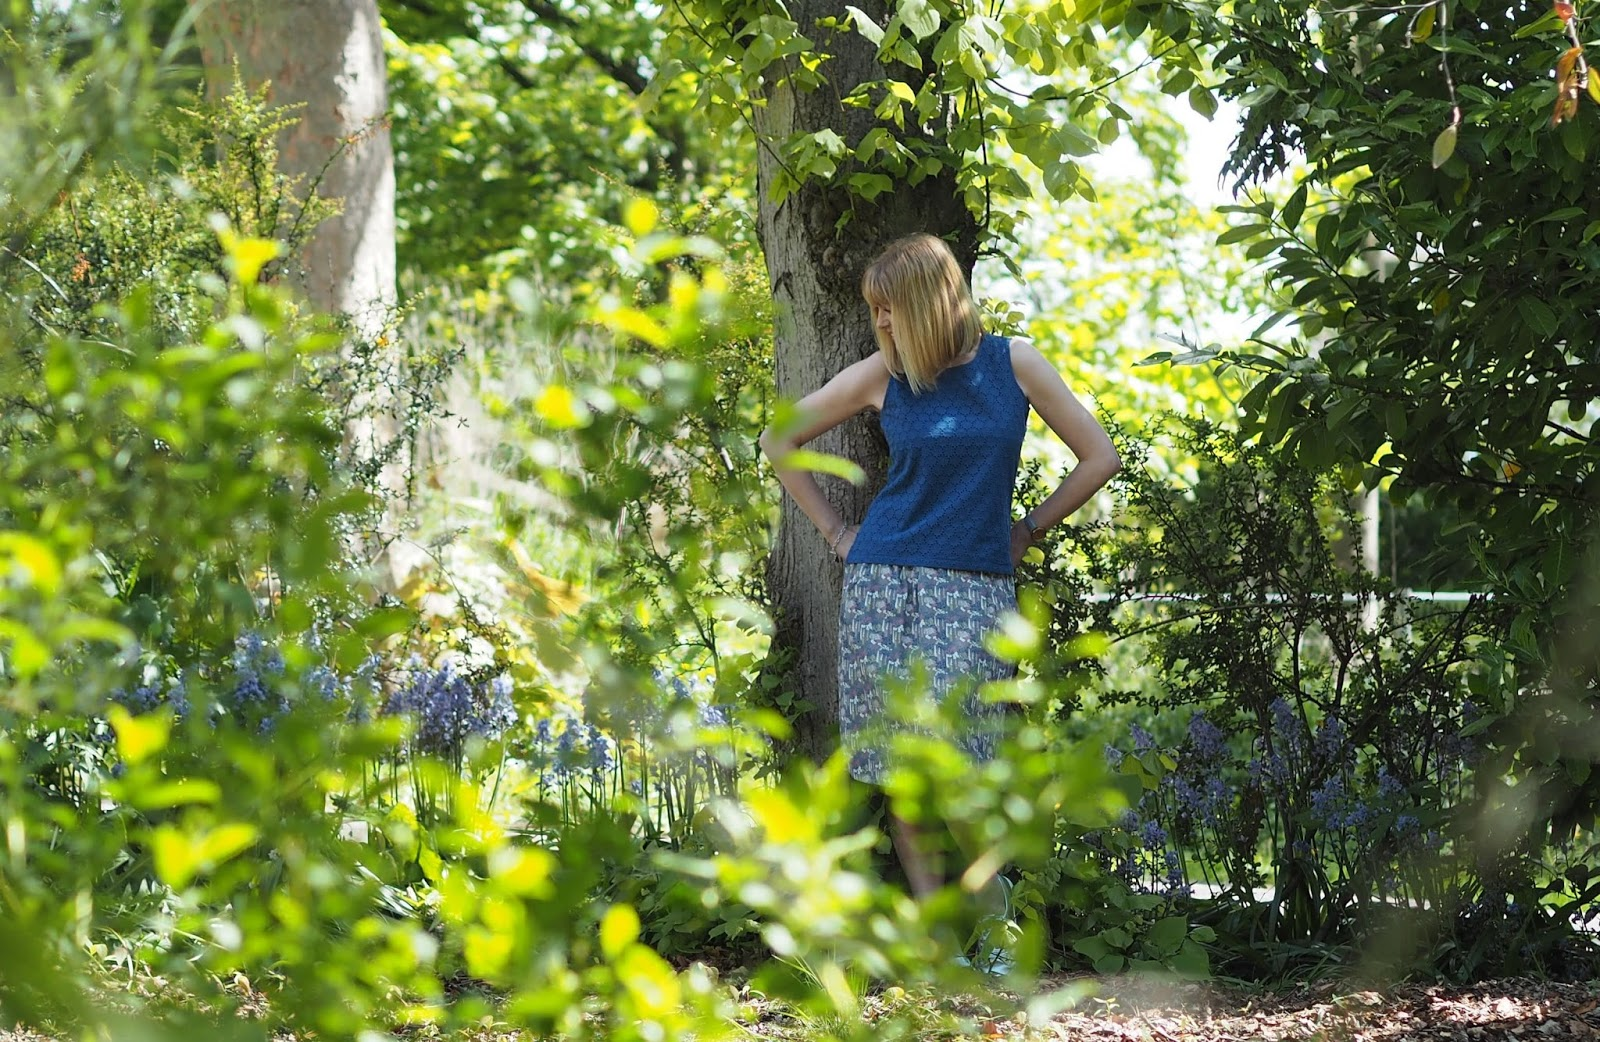 What-Lizzy-Loves- blue-broderie-shell-top-floral-skirt-silver-Superga-sneakers-pumps-in-bluebell-wood